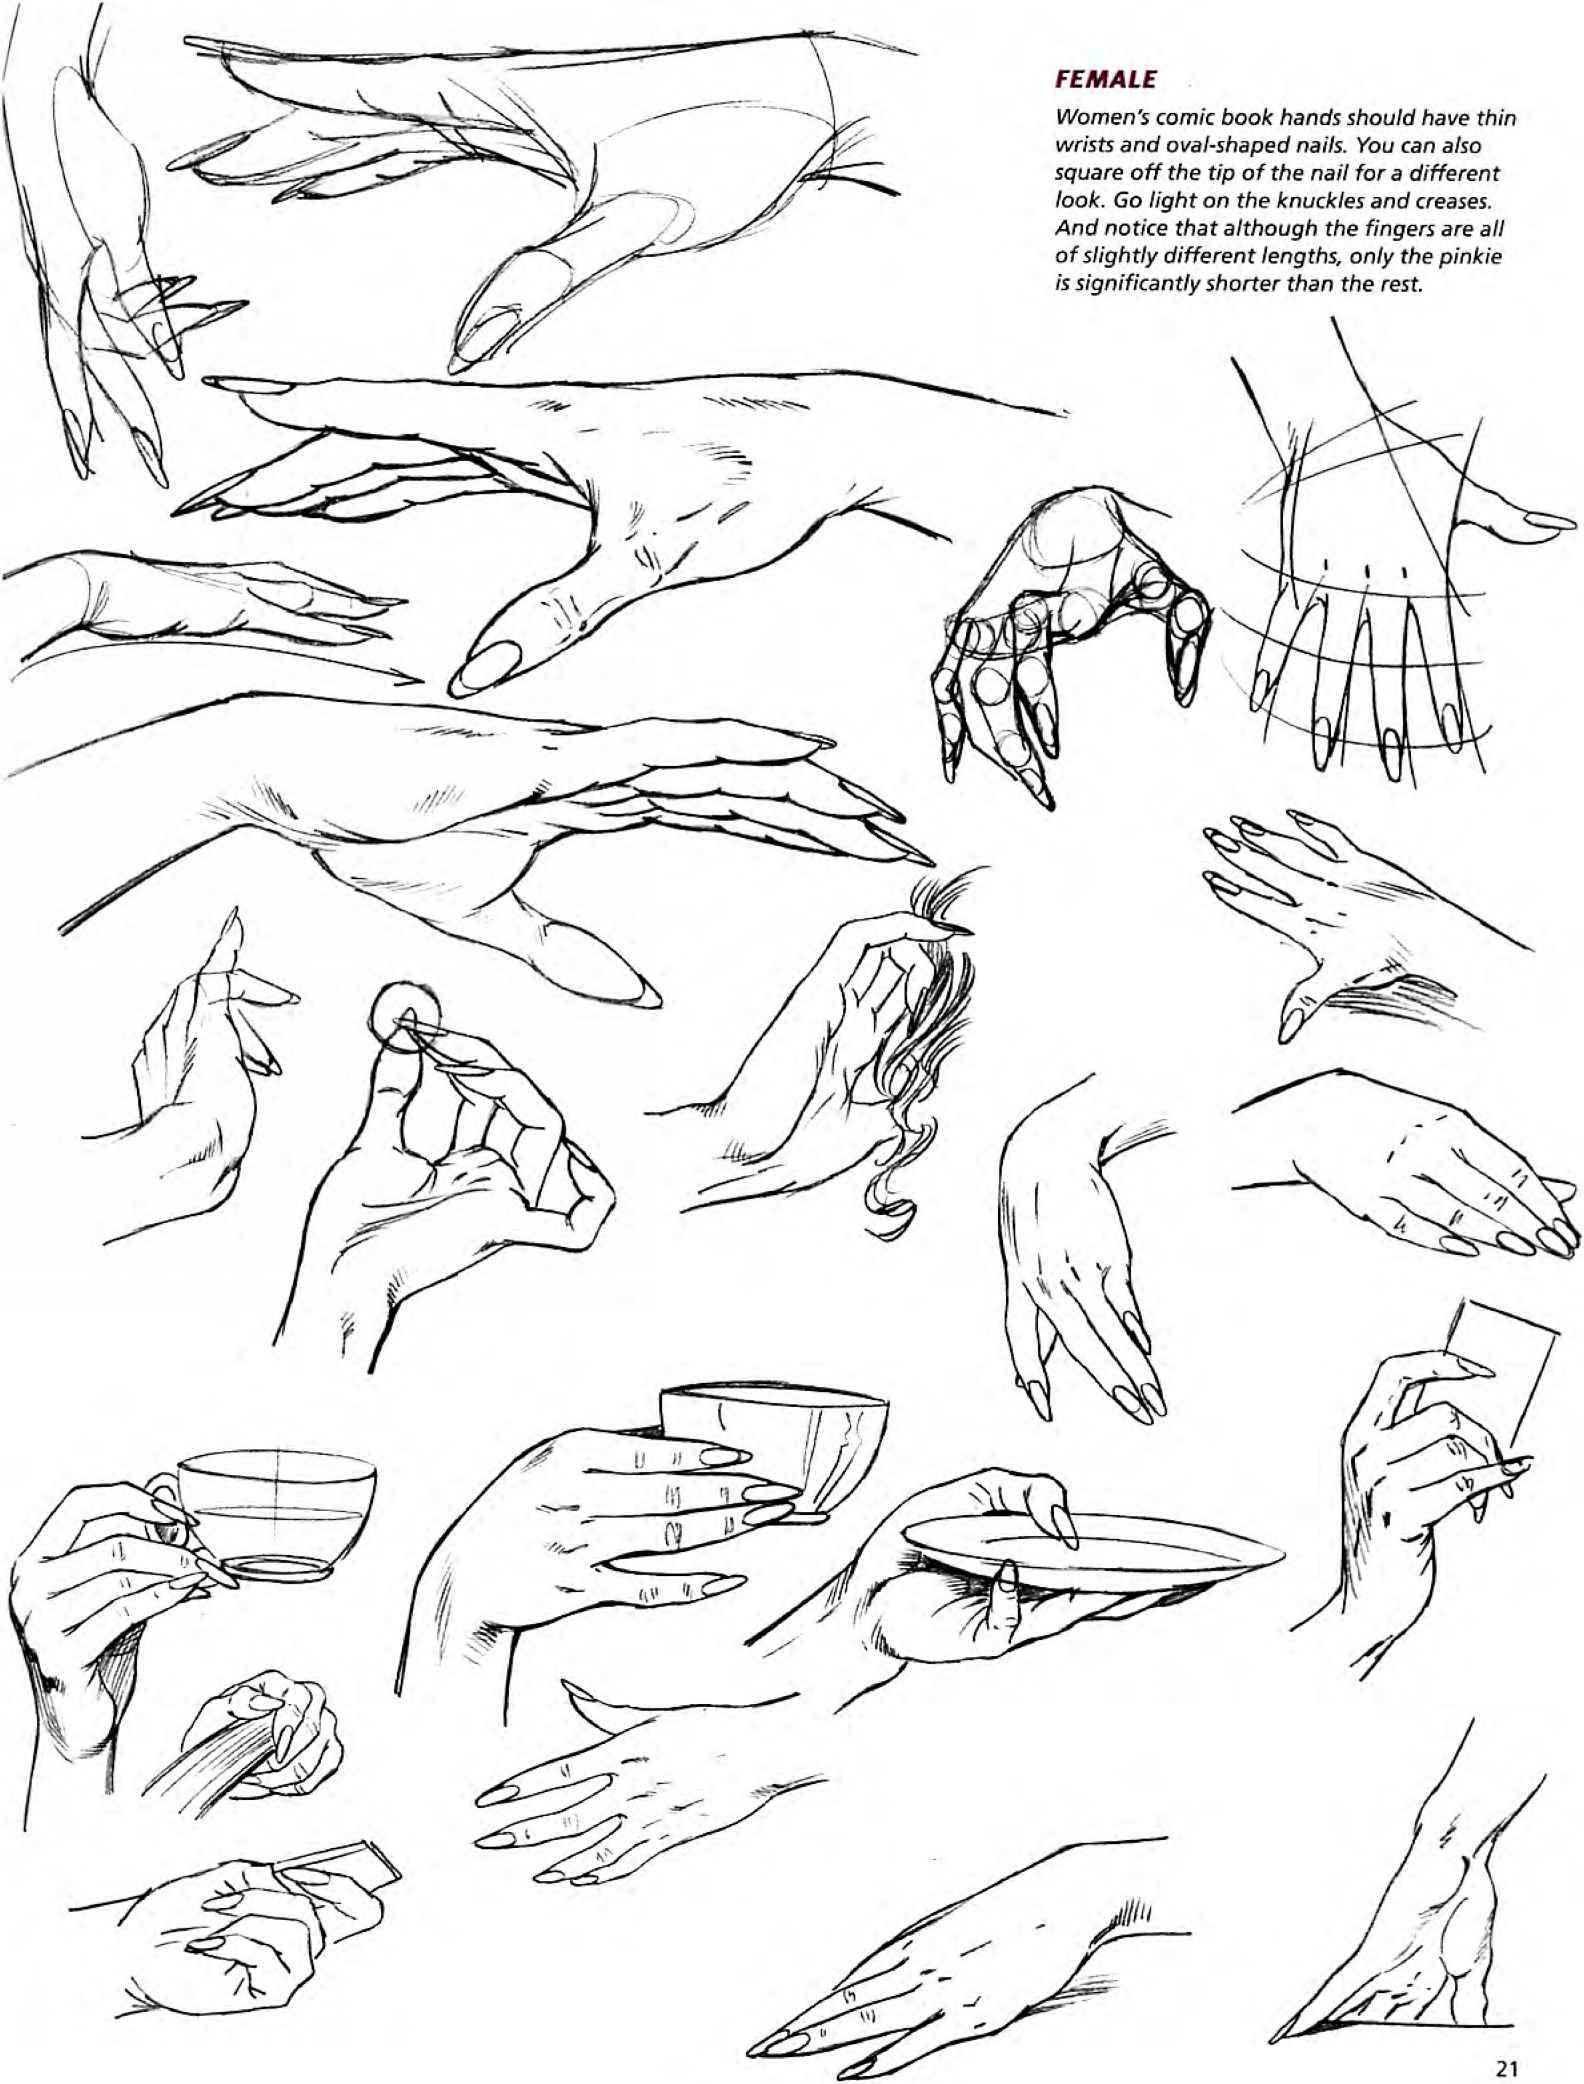 Female Hand Drawing Reference : female, drawing, reference, Tilts, Turns, Drawing, Comics, Hands,, Reference,, Woman, Sketch